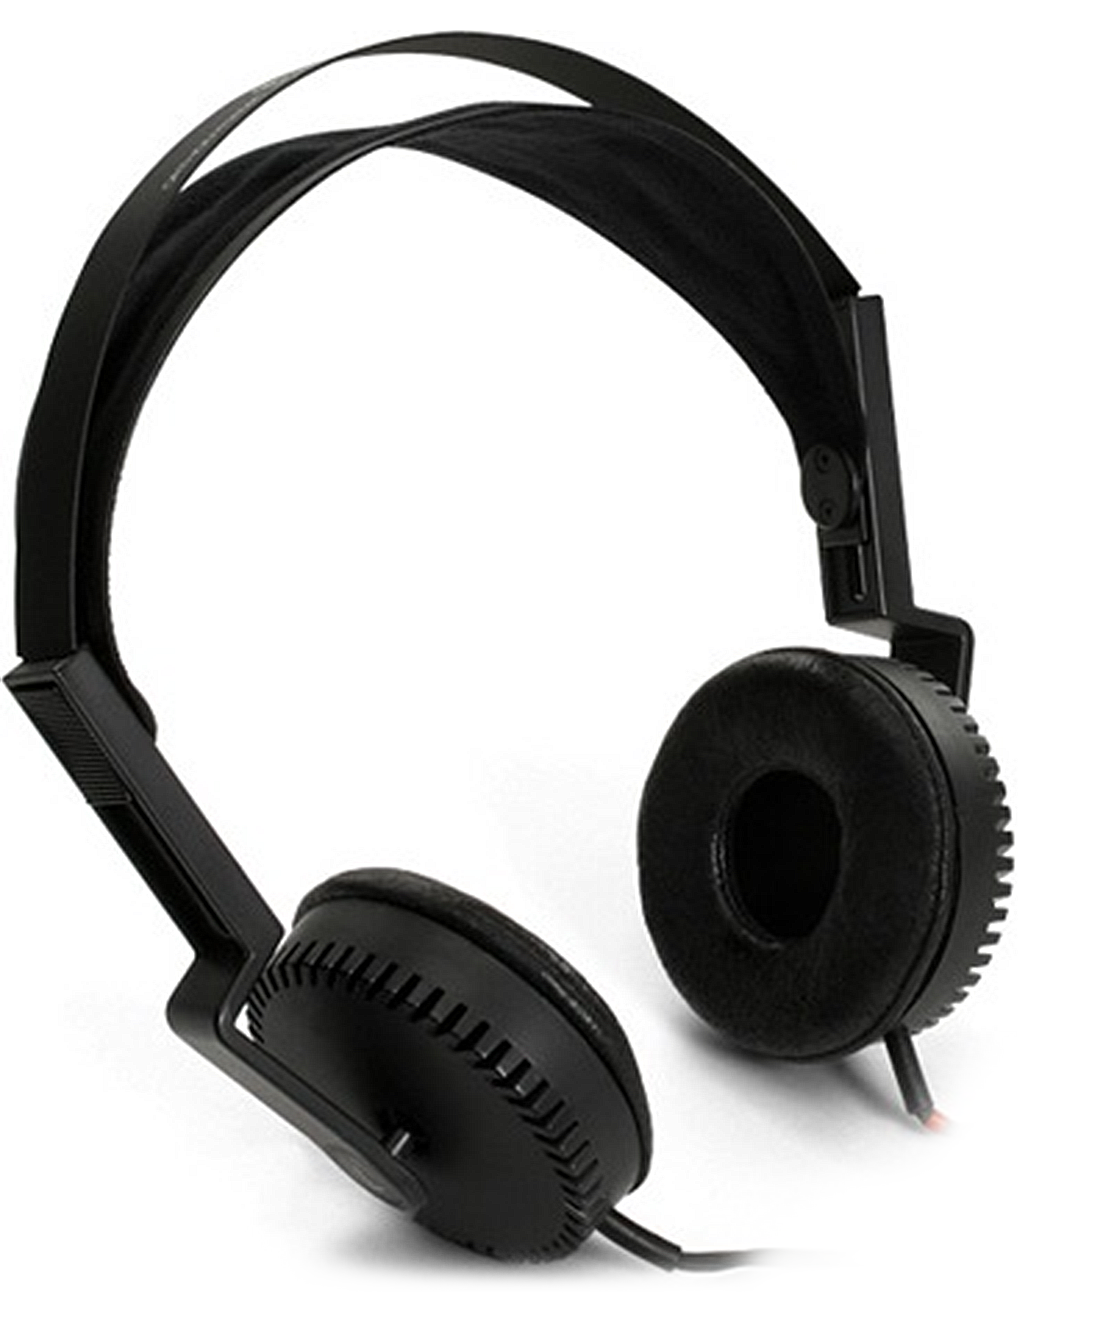 Over the head wired headphones with large ear pads.